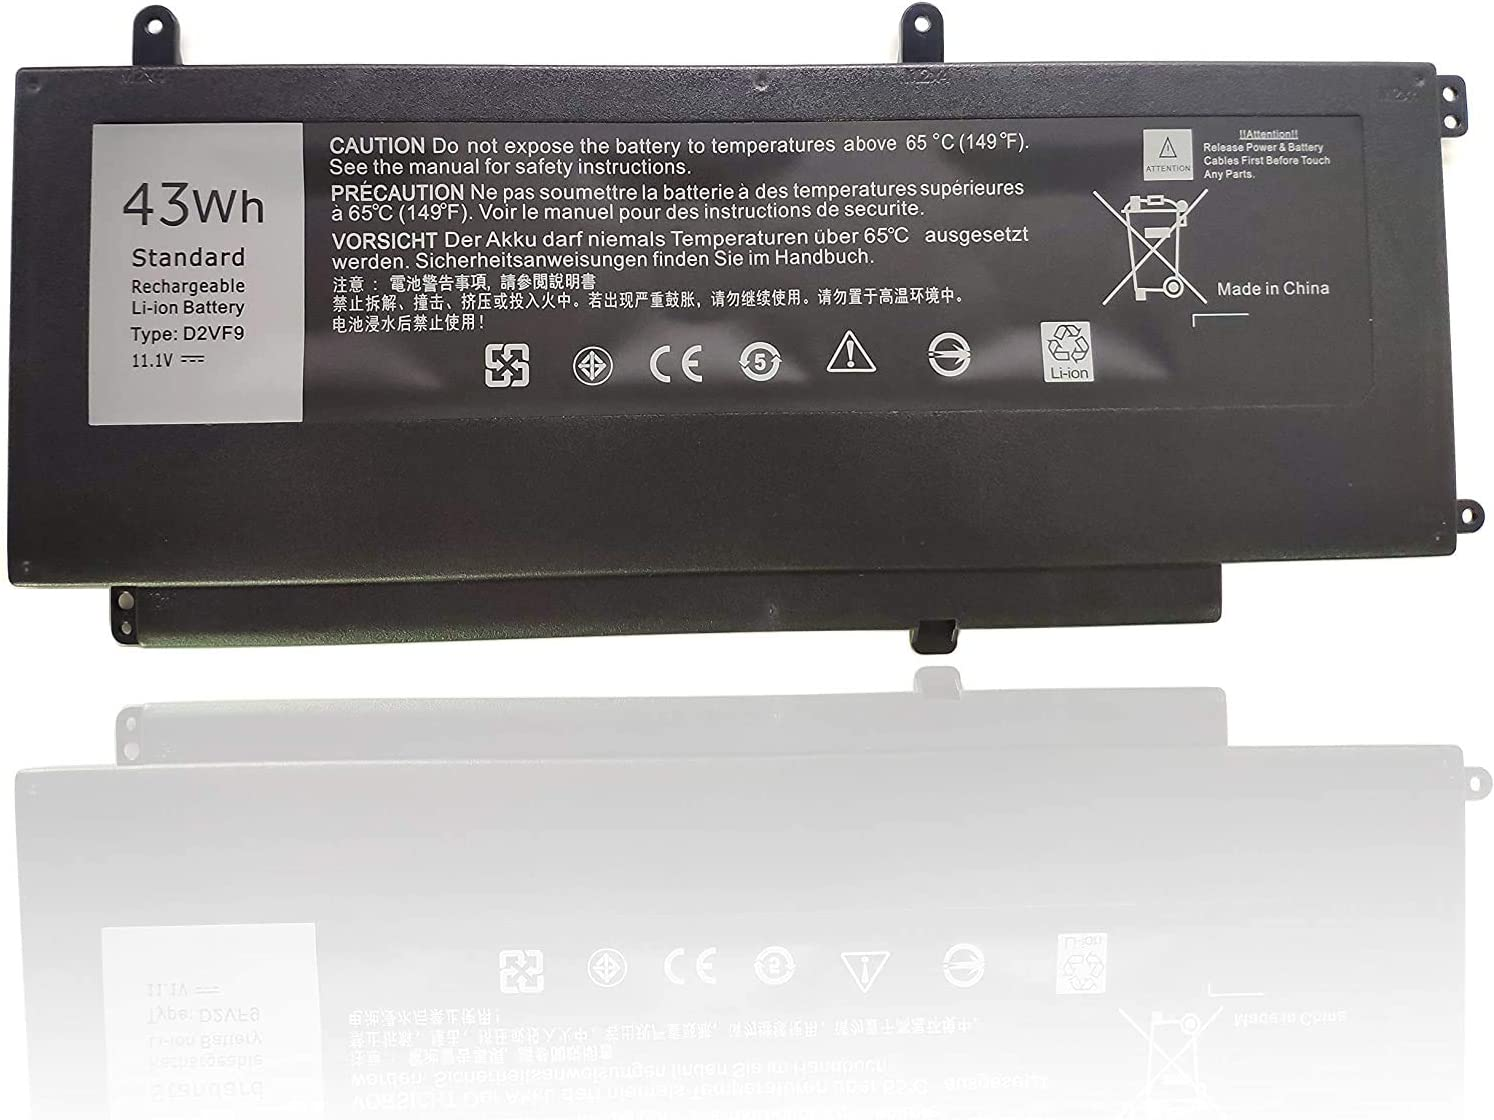 FLIW D2VF9 Replacement Battery Compatible with Dell Inspiron 15 7547 7548 0PXR51 PXR51 [11.1V 43WH]